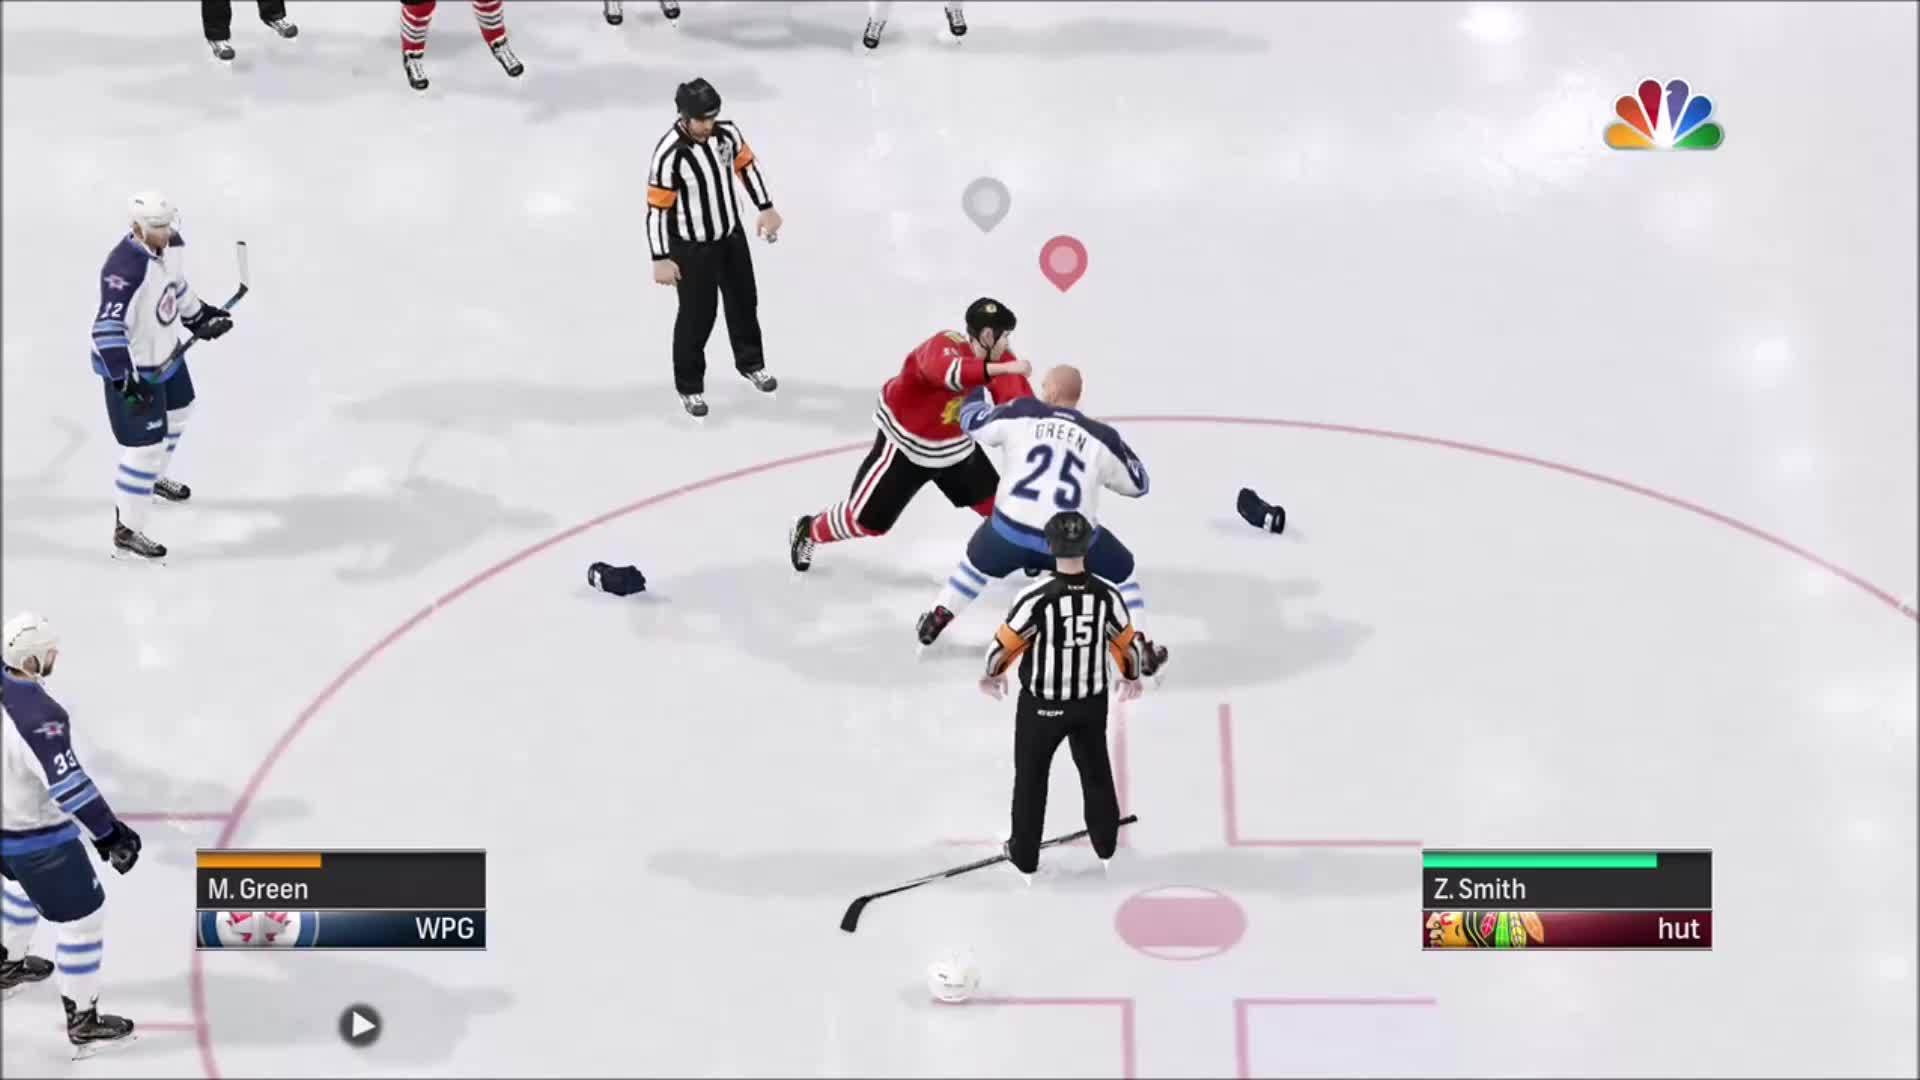 nhlhut, Good to see fighting is perfectly polished (reddit) GIFs